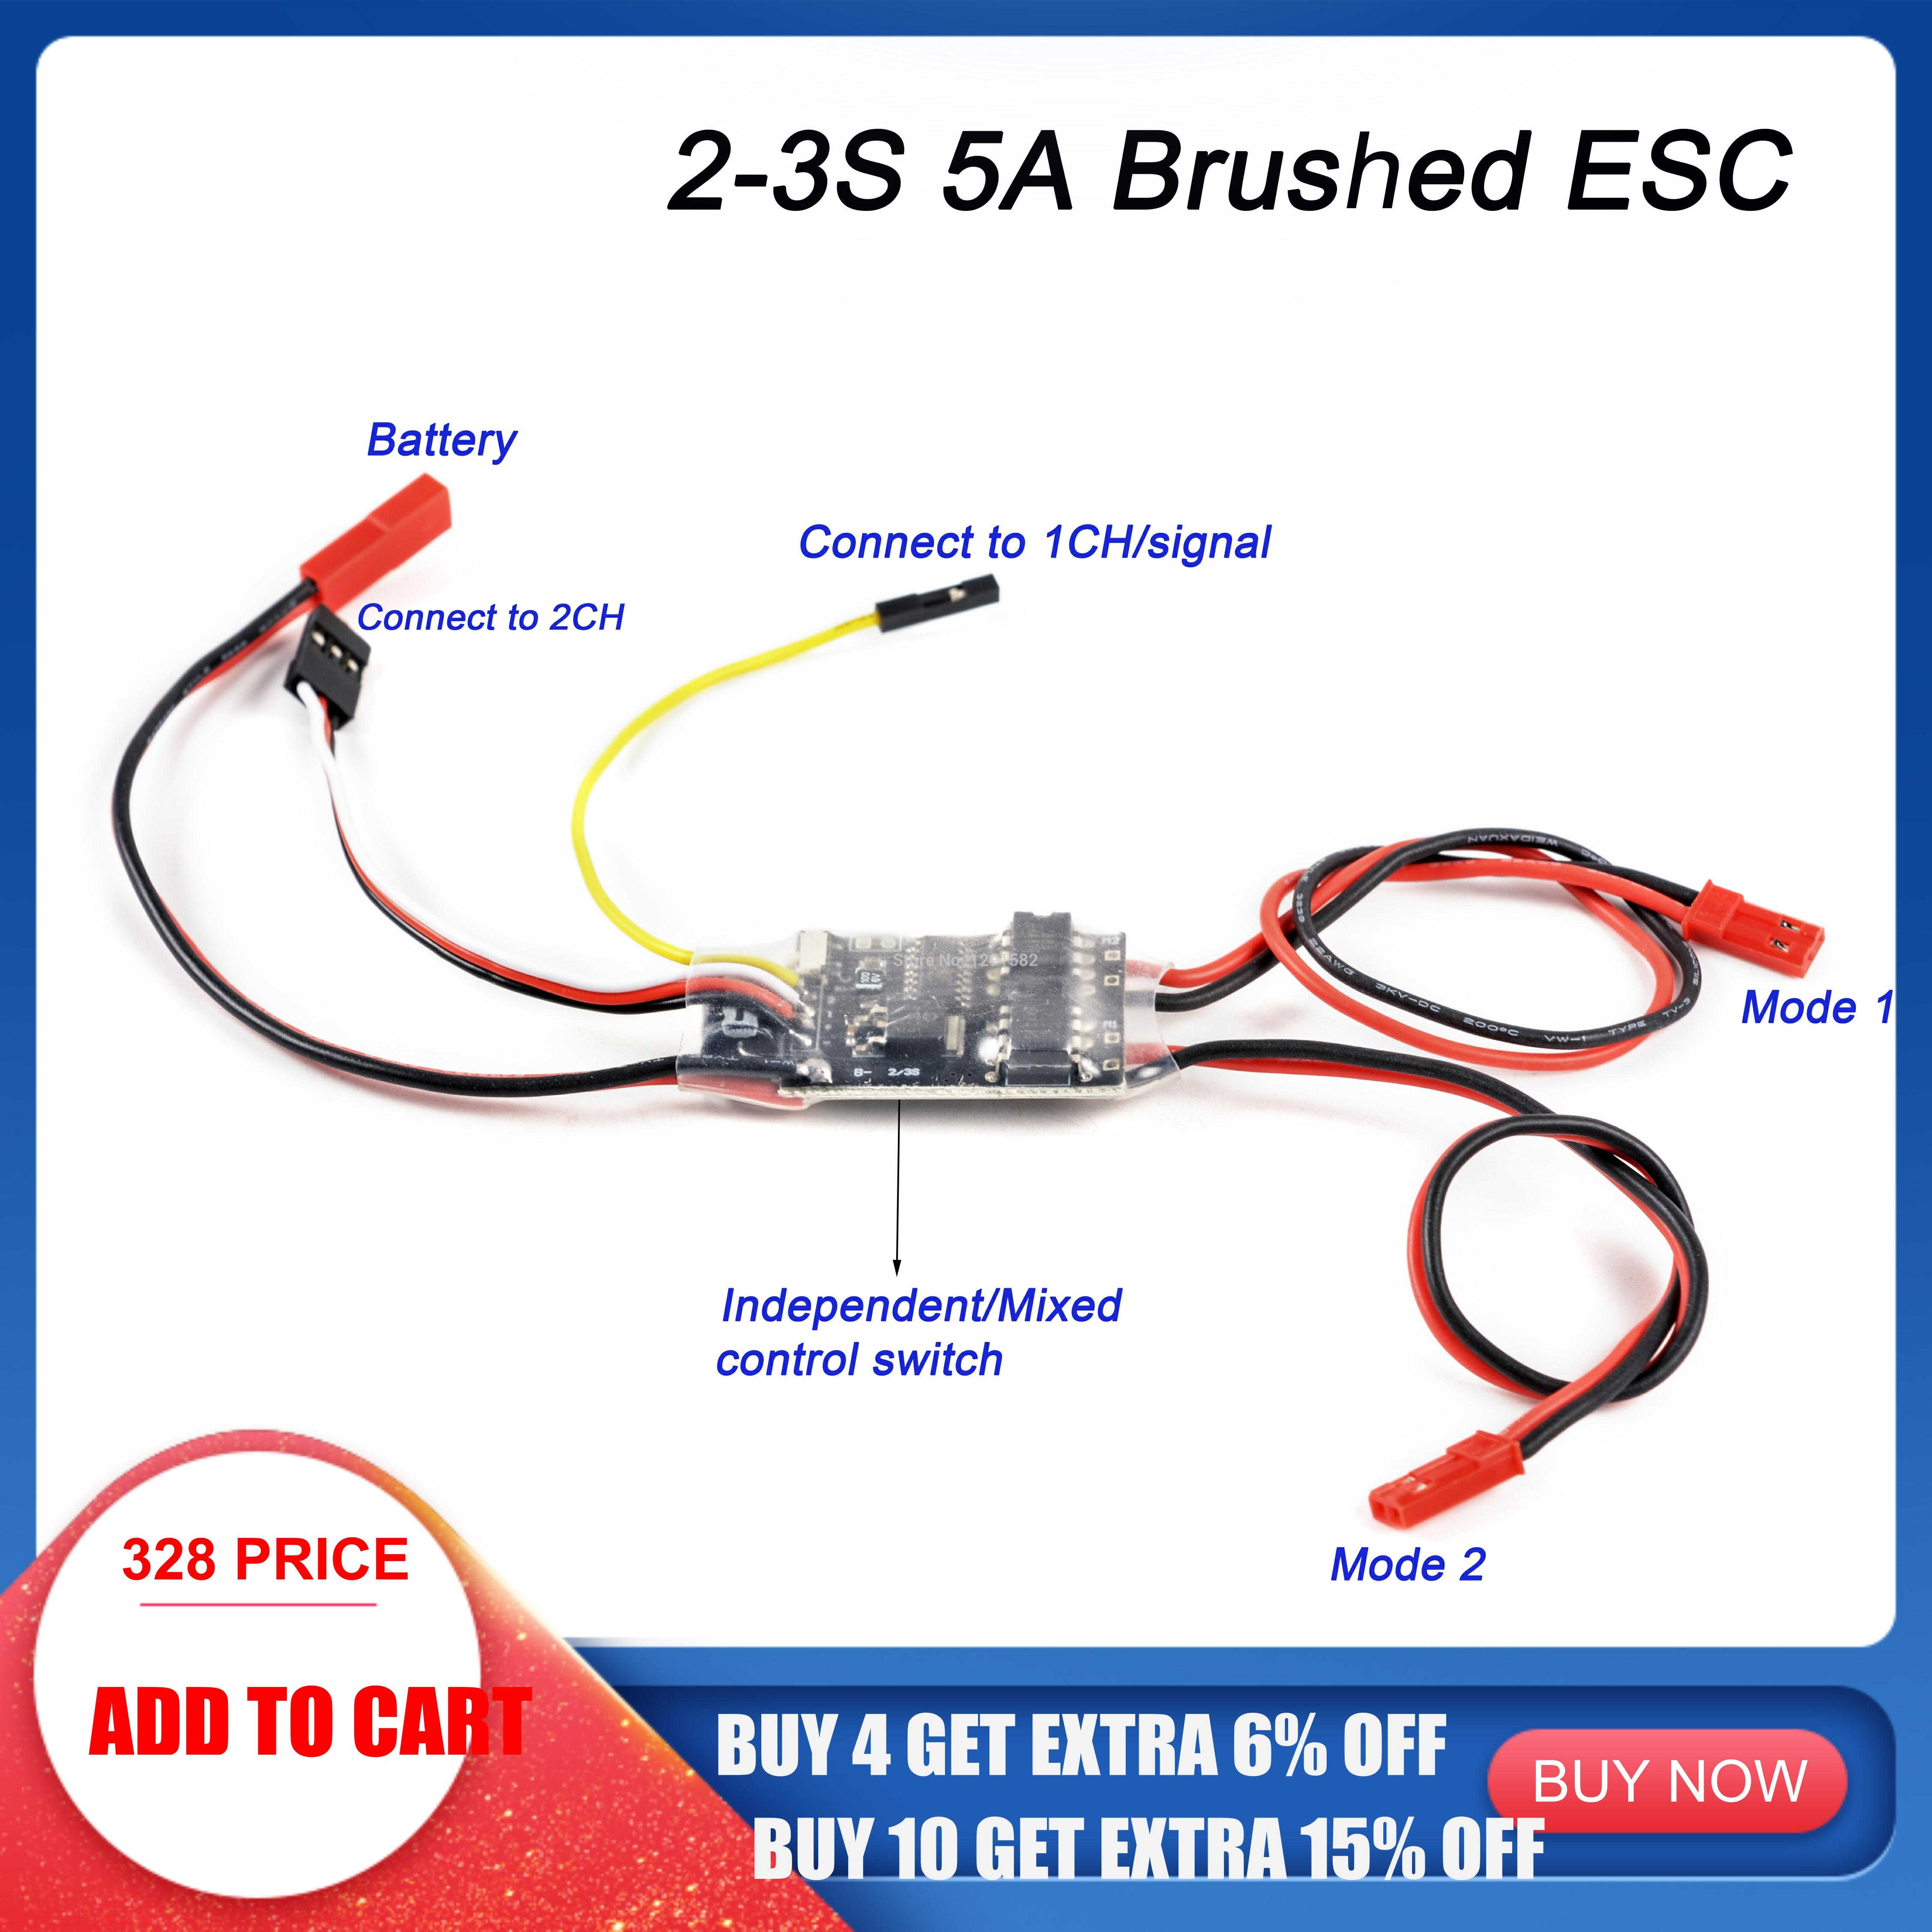 NEW 2S-3S Lipo 5A ESC Dual Way Bidirectional Brushed ESC Speed Control For RC Model Boat/Tank 130 180 Brushed Motor Spare Parts